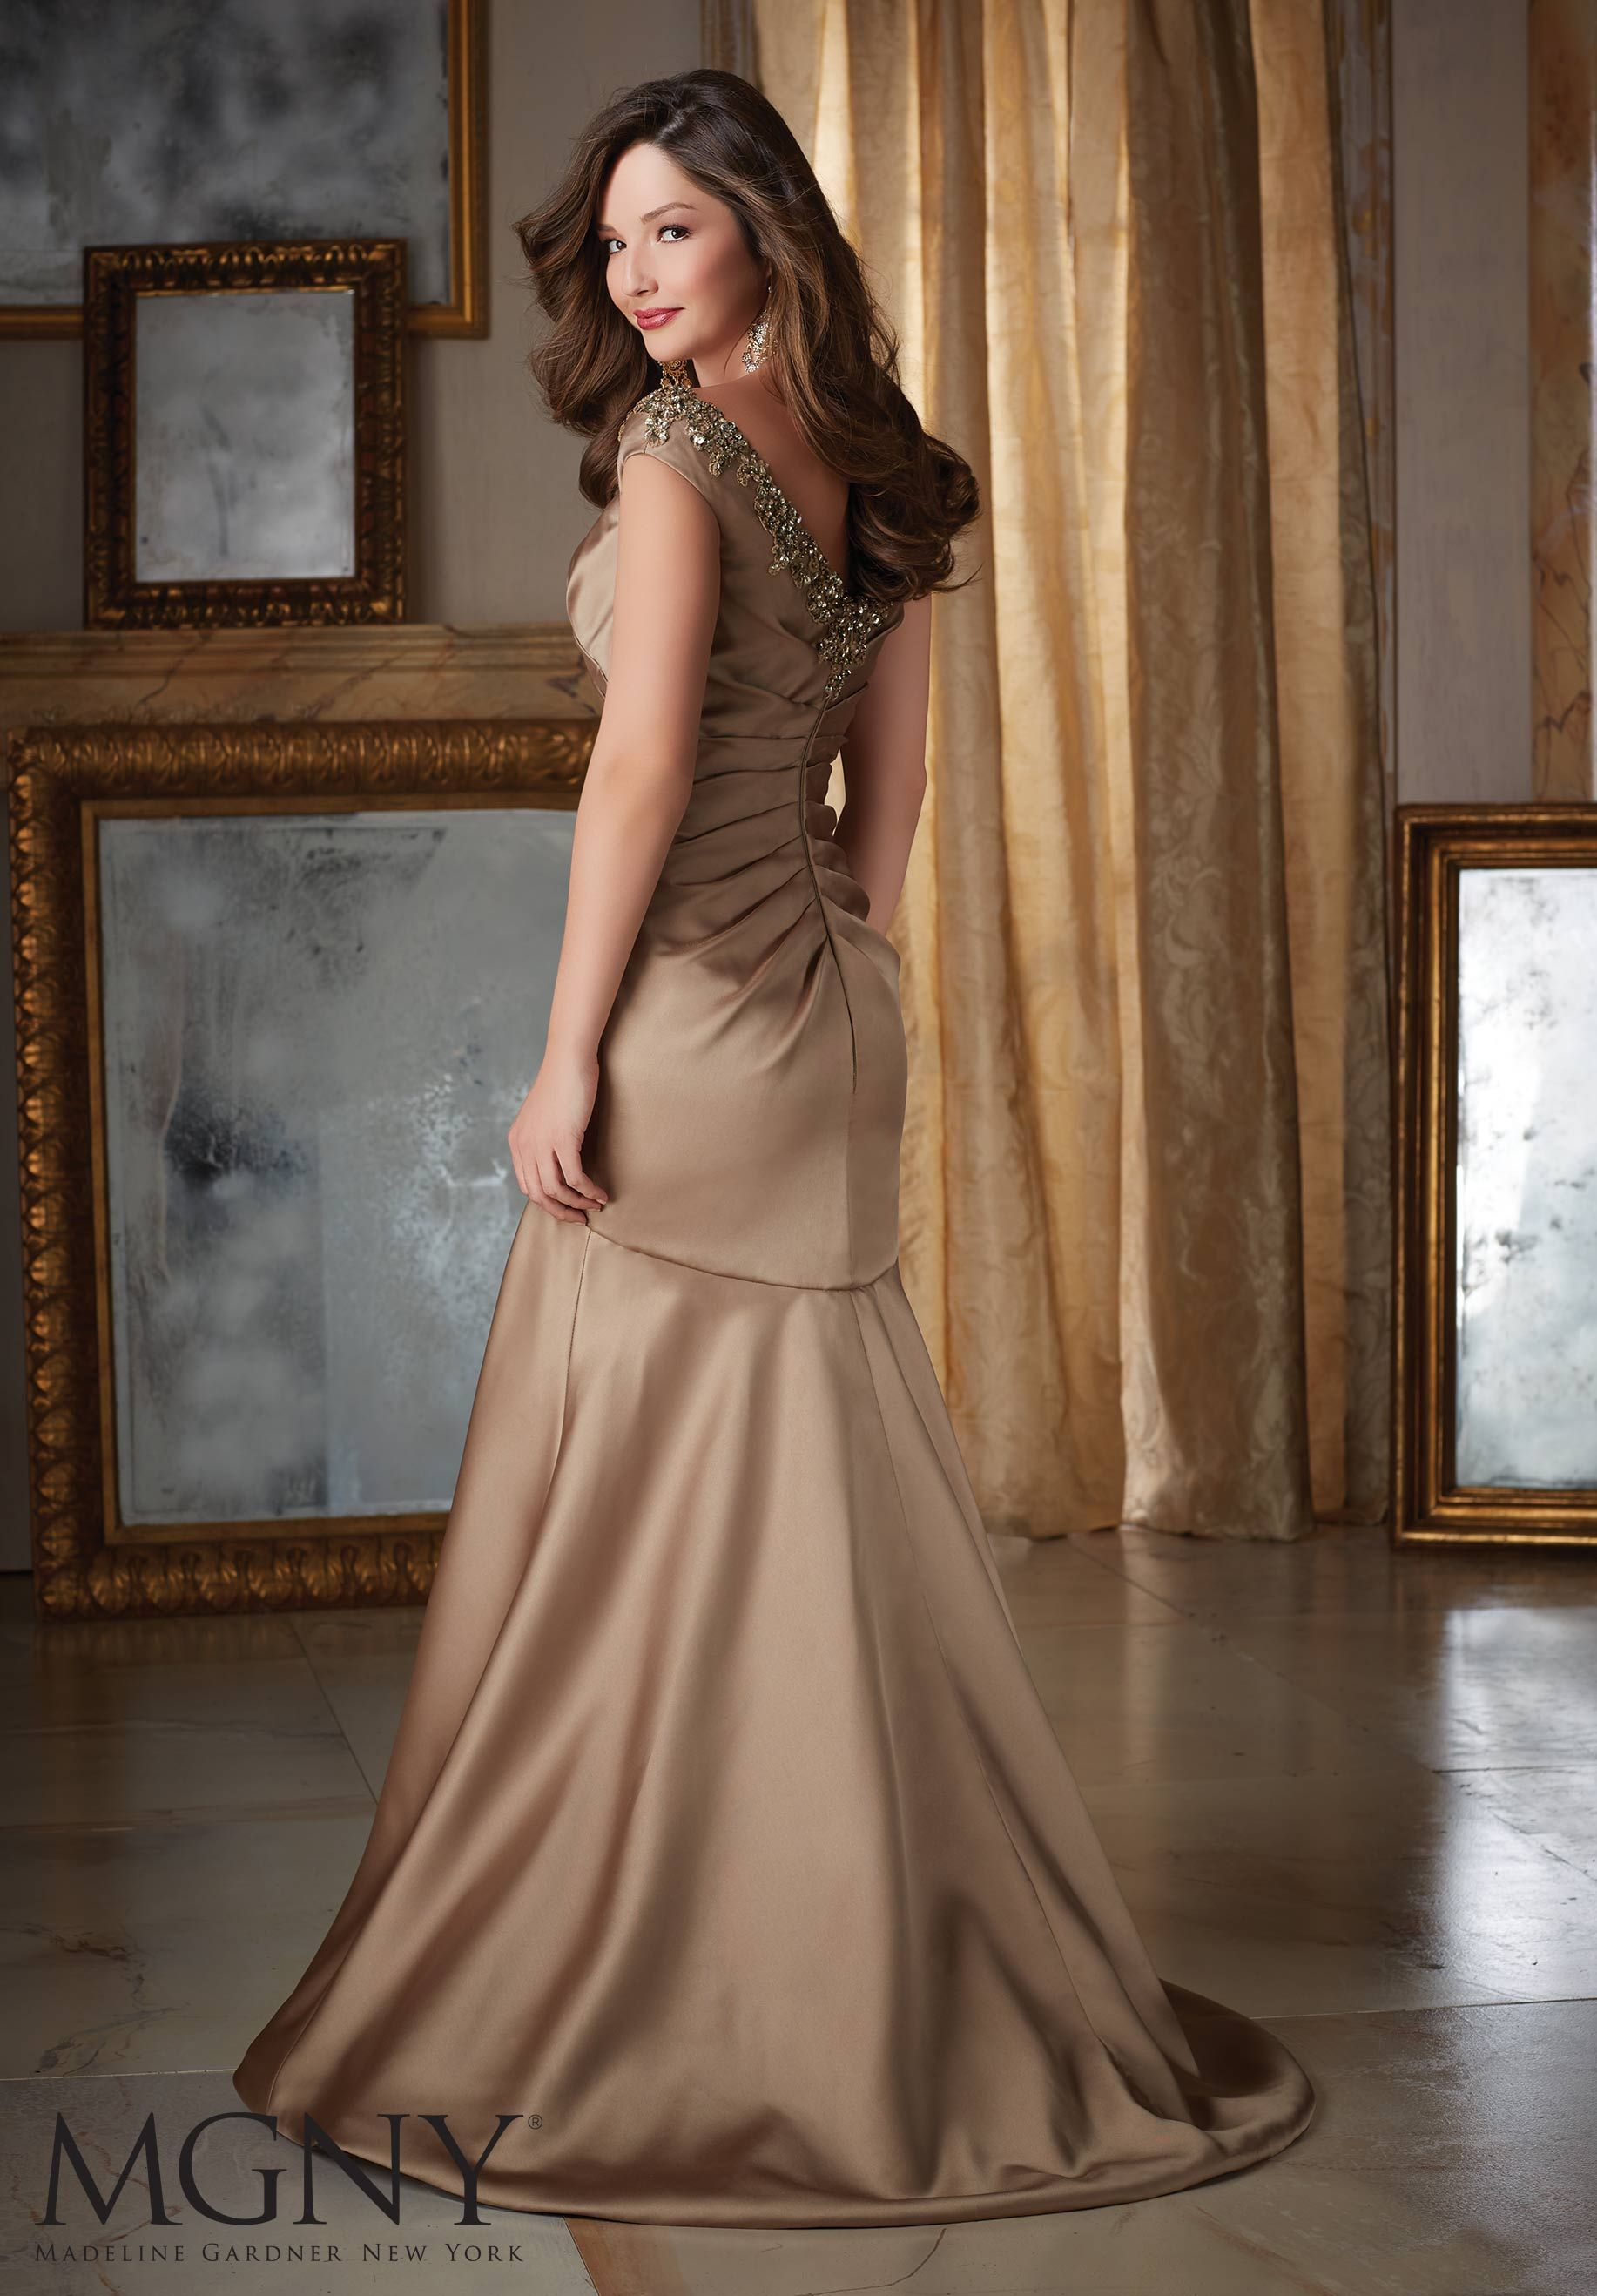 Jeweled beading on larissa satin mother of the bride dress jeweled beading on larissa satin mother of the bride dress designed by madeline gardner colors ombrellifo Gallery